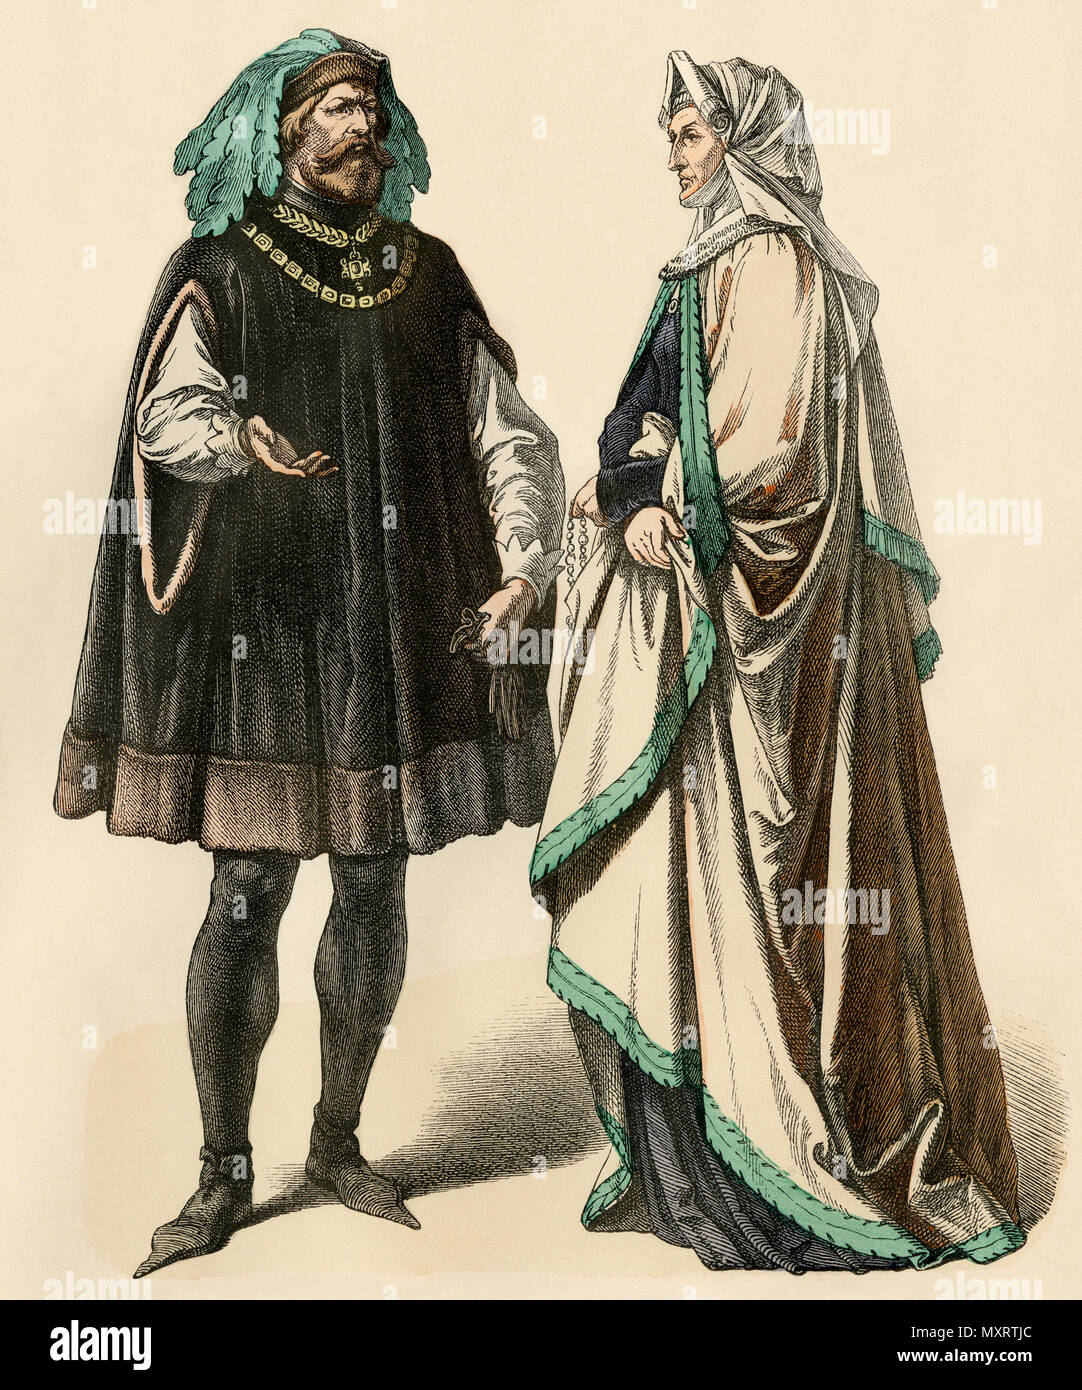 Nobleman and noblewoman in fashions of the high Middle Ages. Hand-colored print - Stock Image